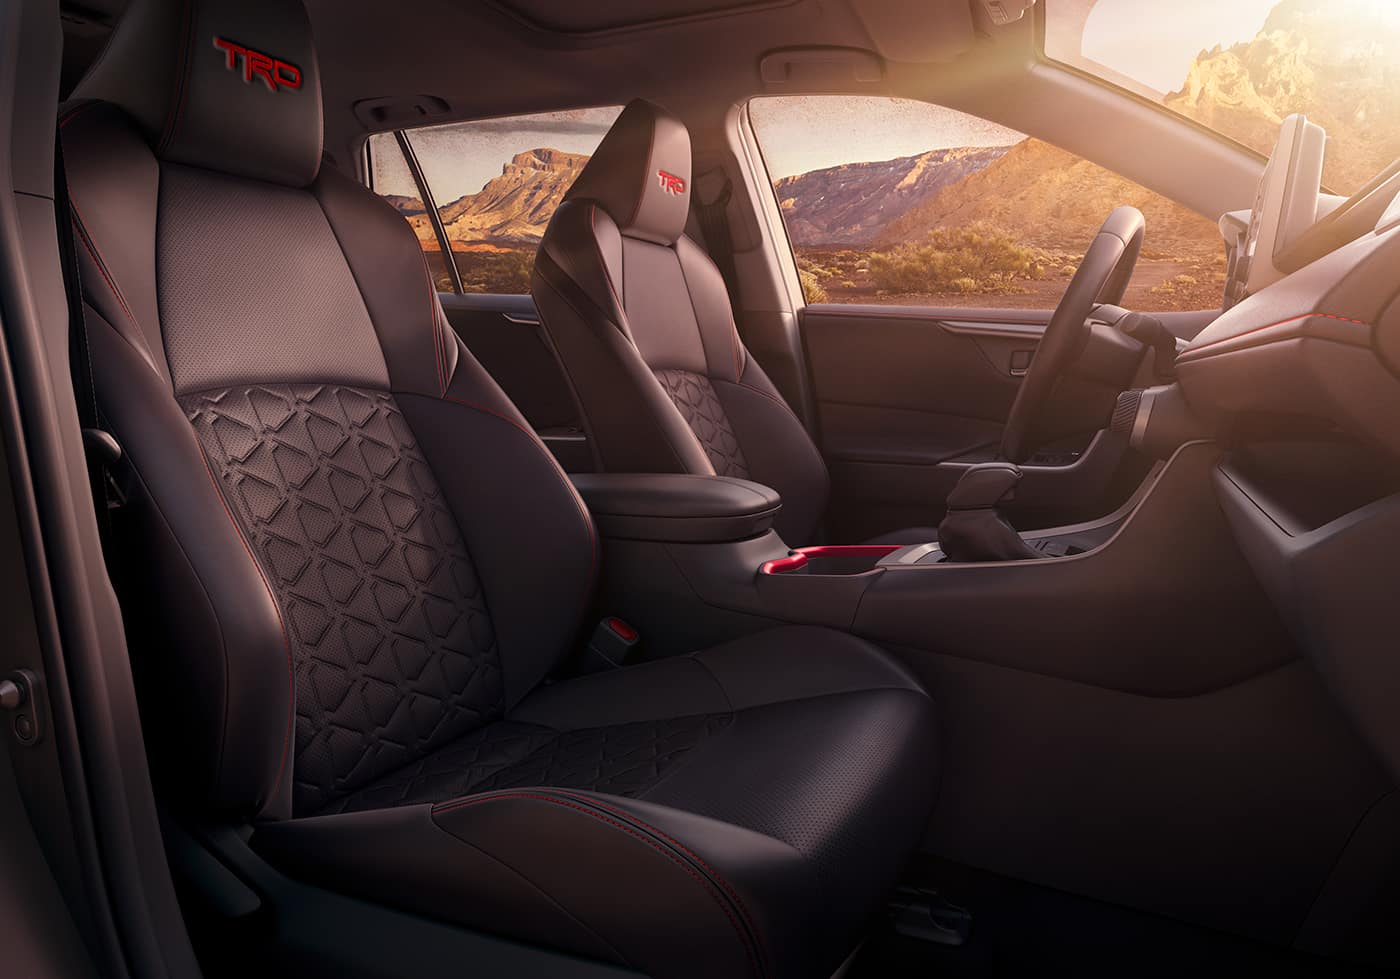 Performance features of the 2020 Toyota RAV4 at Jim Coleman | The seatings of the 2020 RAV4